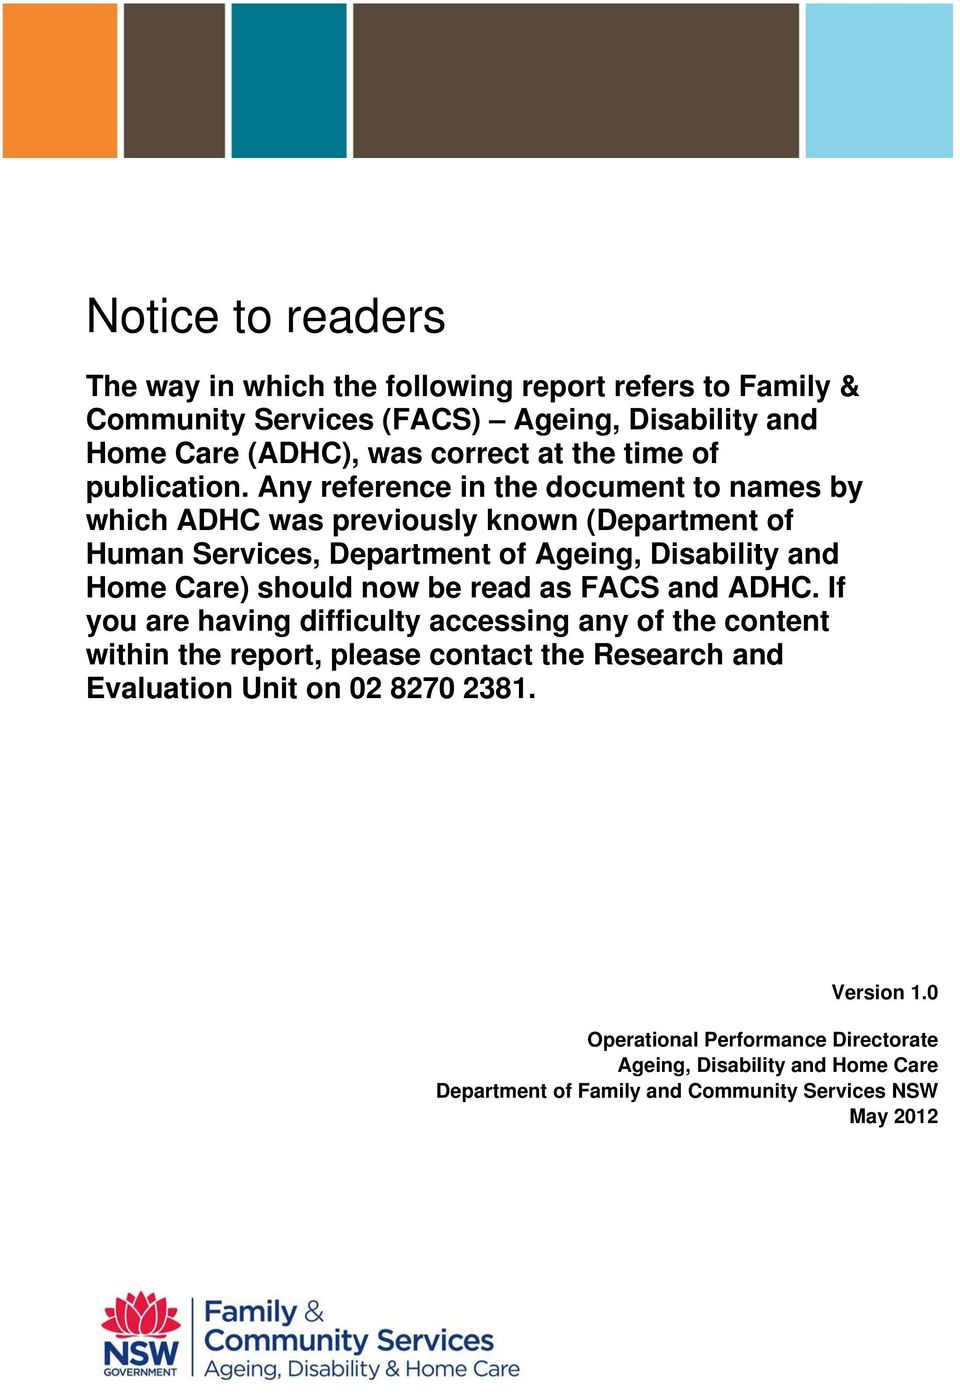 Any reference in the document to names by which ADHC was previously known (Department of Human Services, Department of Ageing, Disability and Home Care) should now